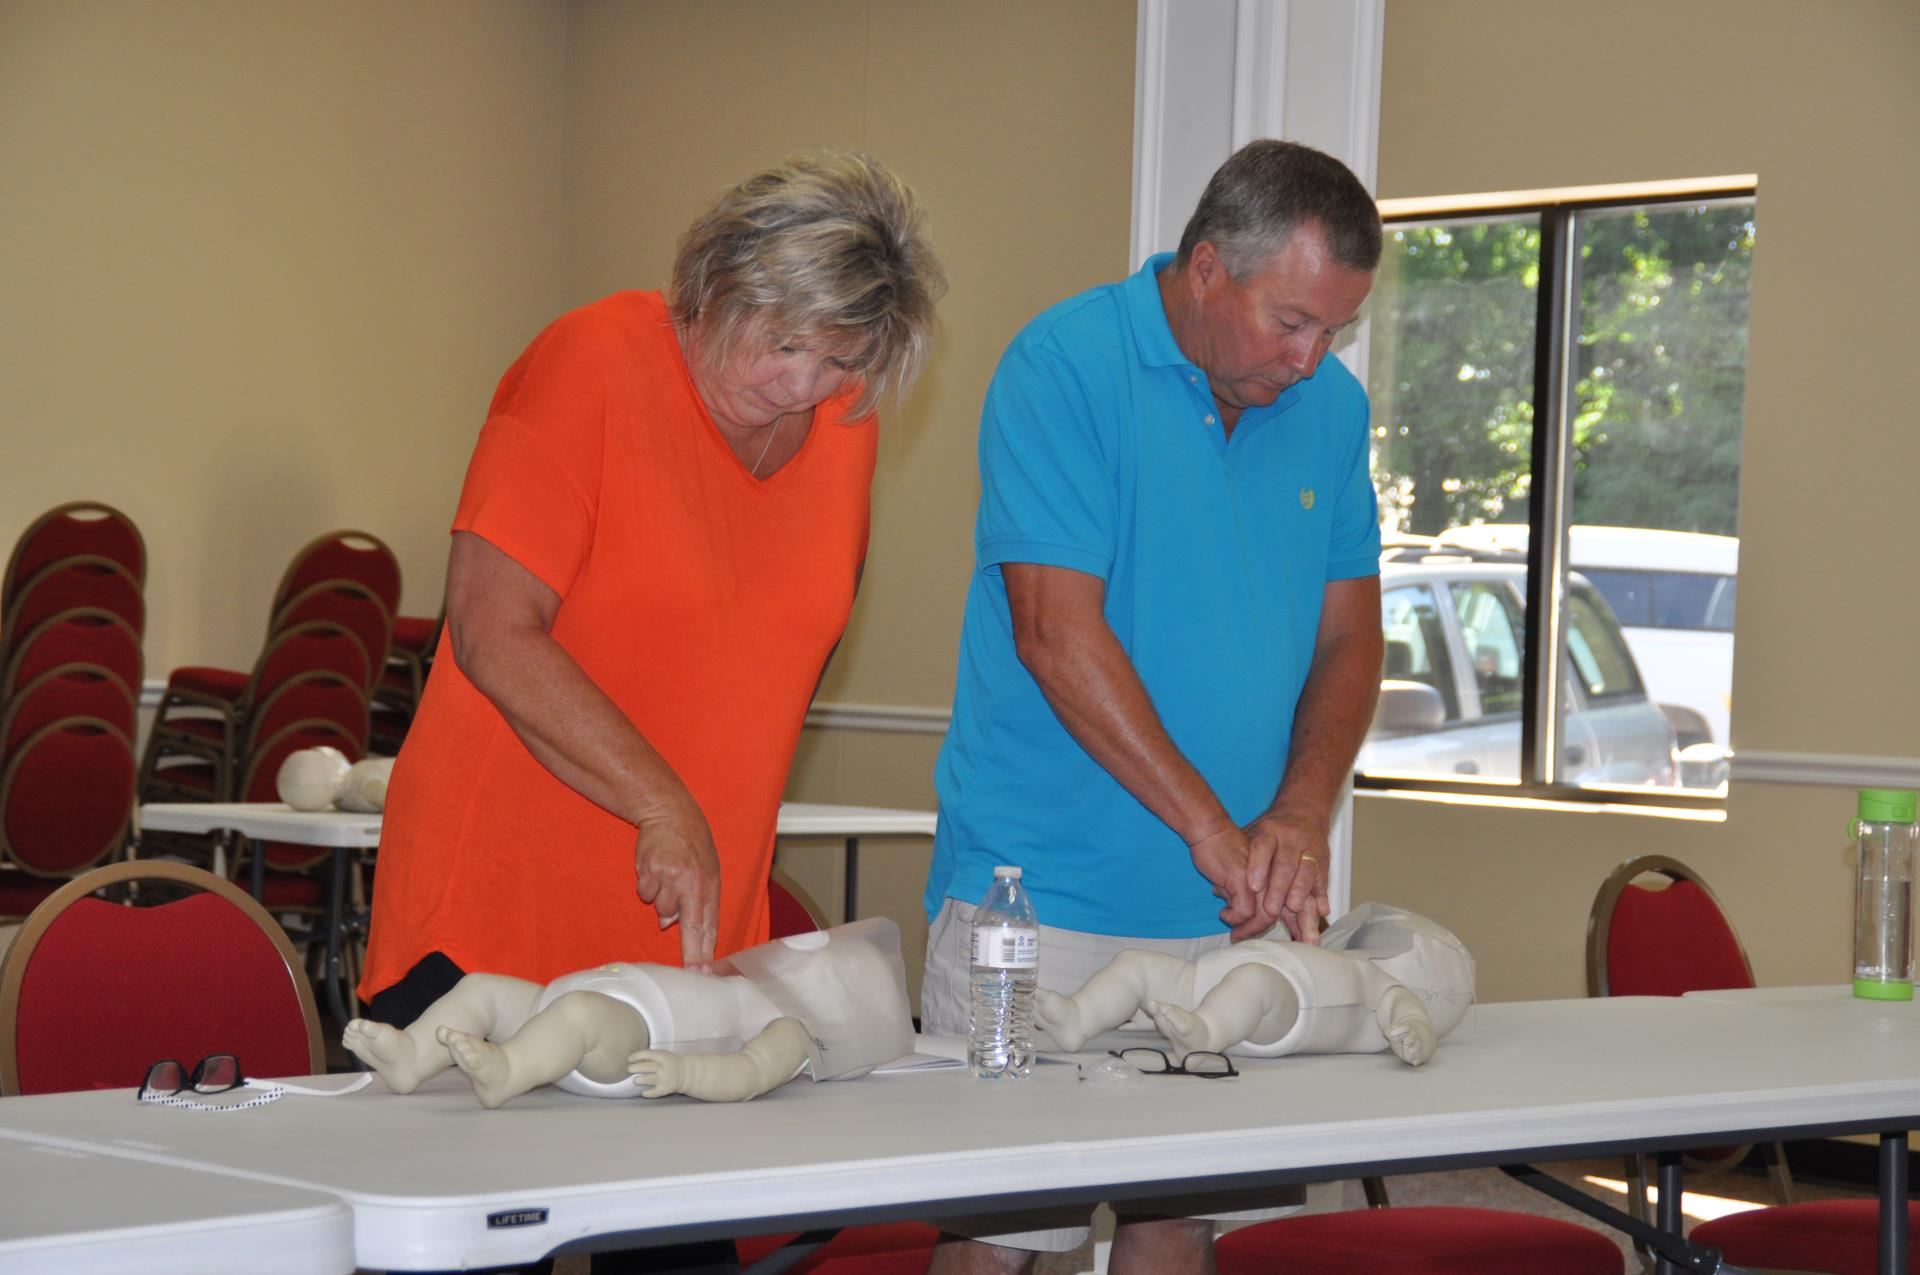 Franklin Fire Offers FREE CPR Classes